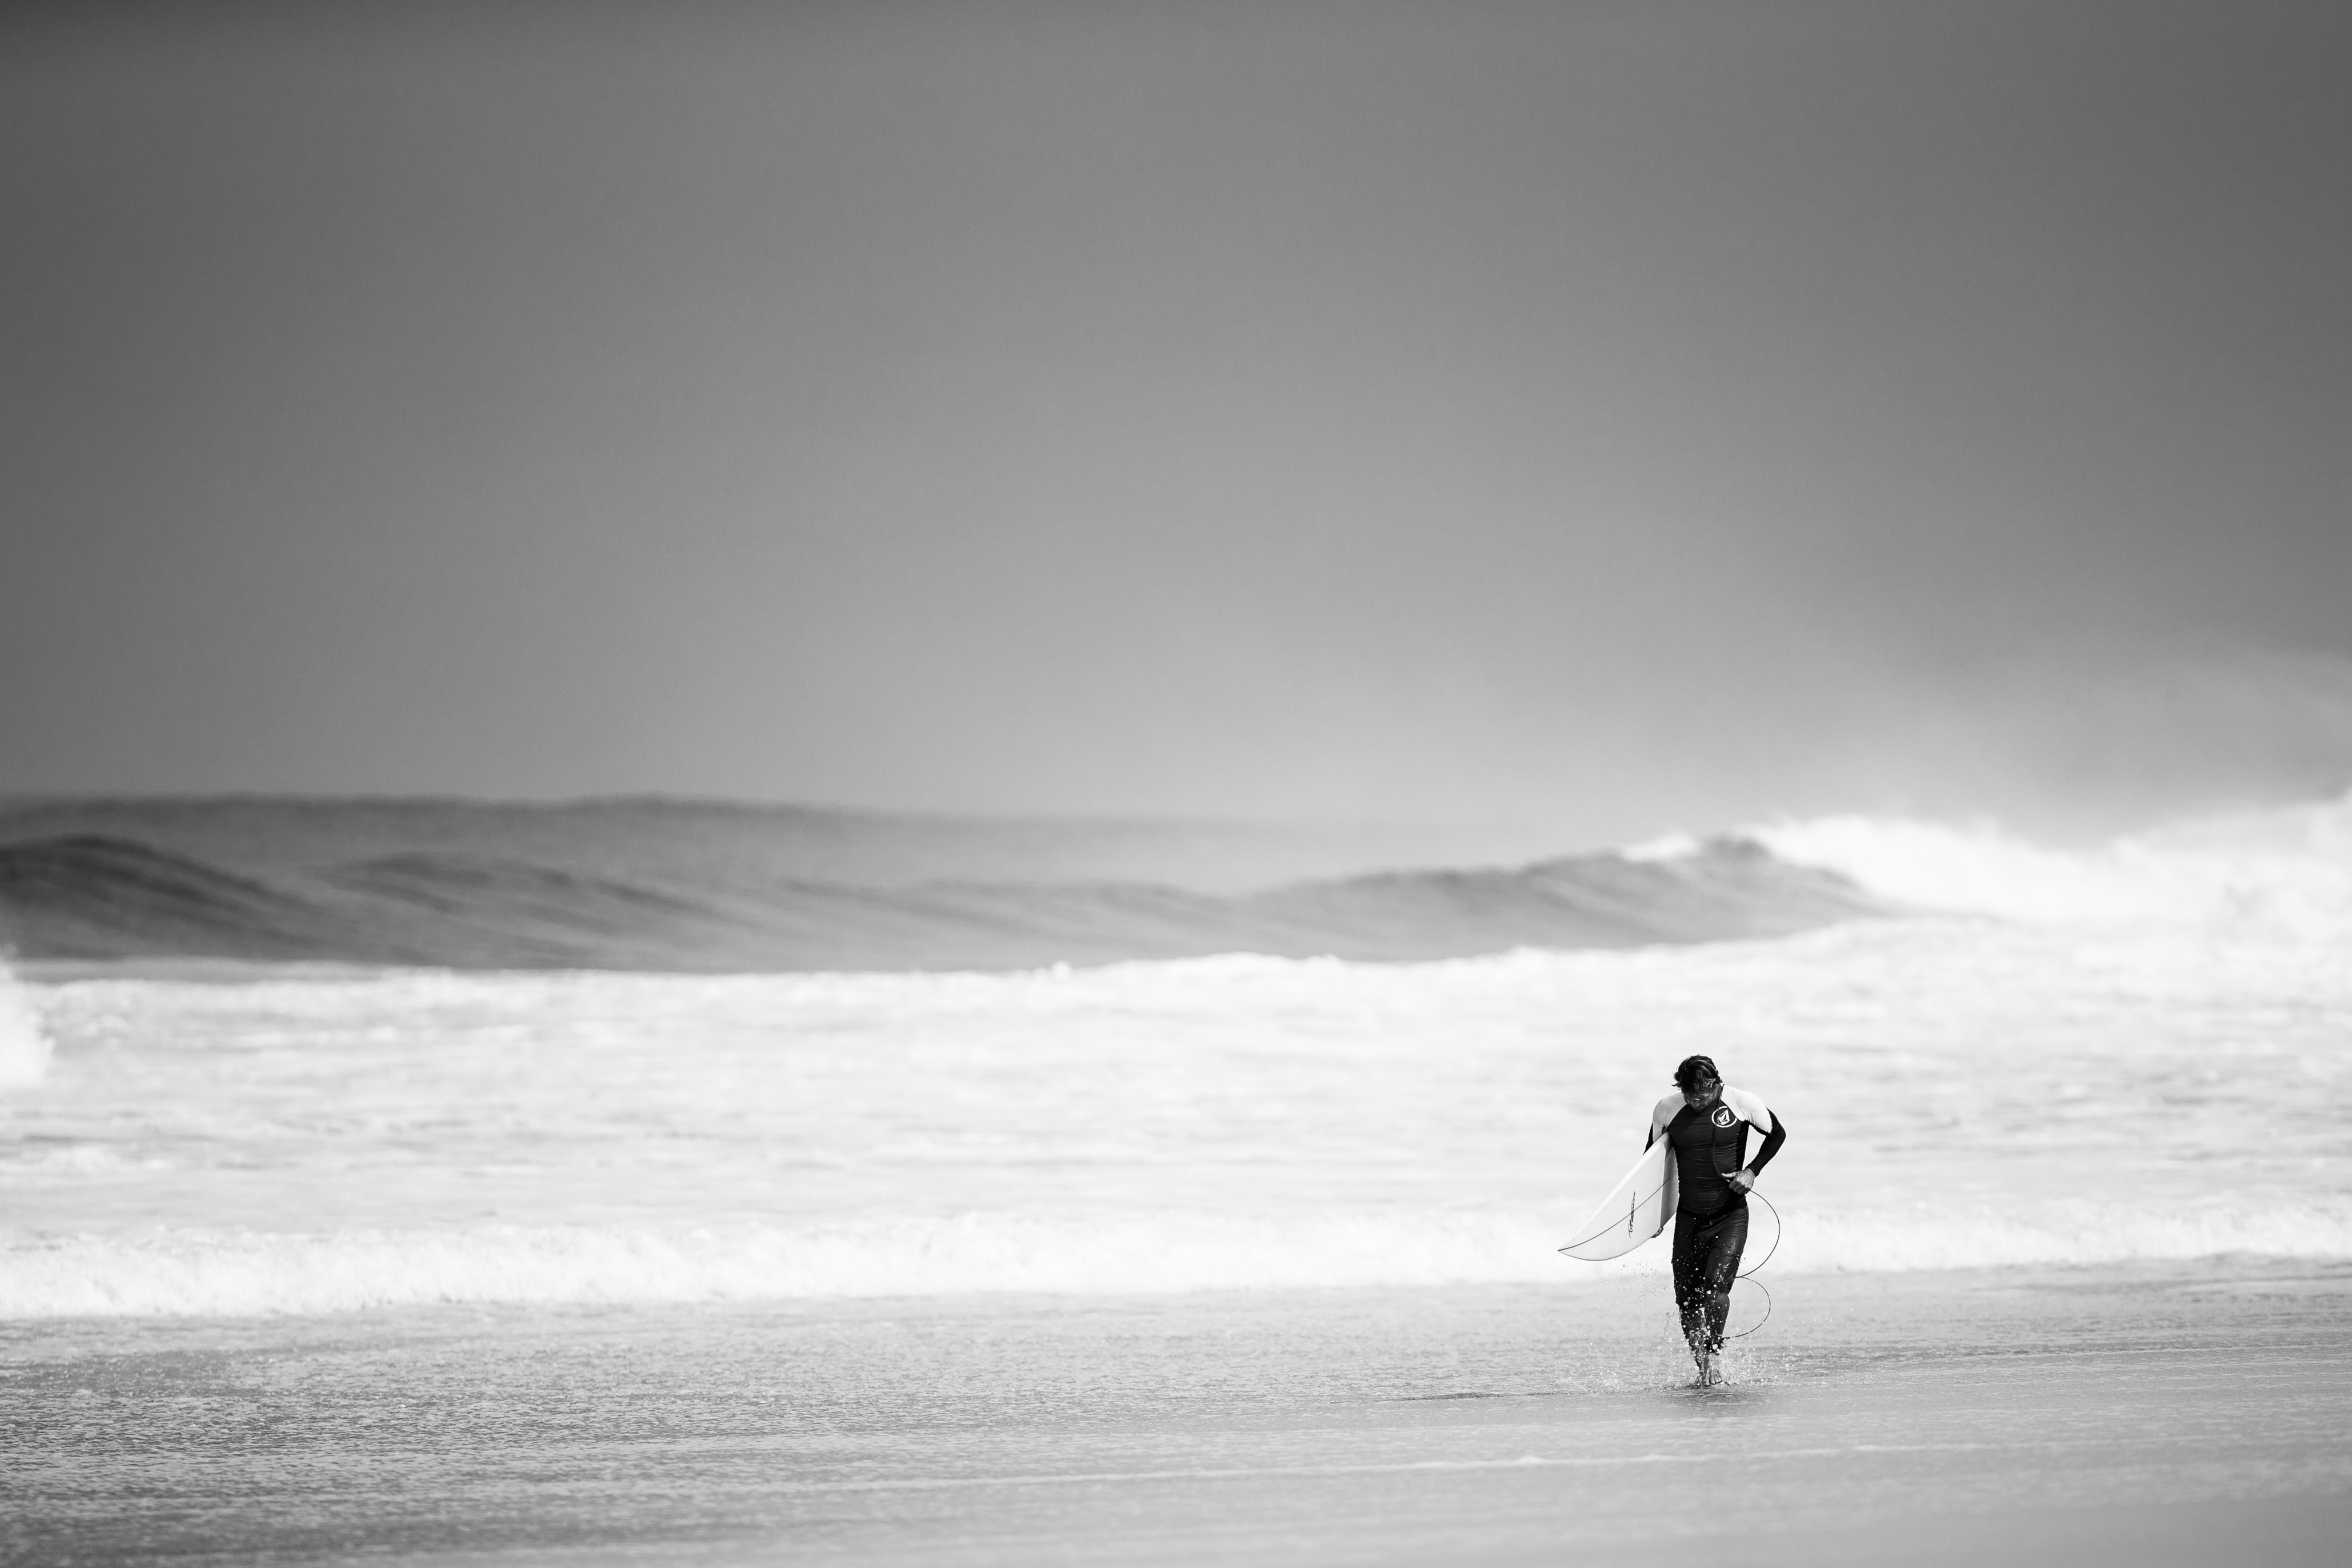 Surfer on the beach, surfing, beach, ocean, waves, water, guy, man, people, black and white